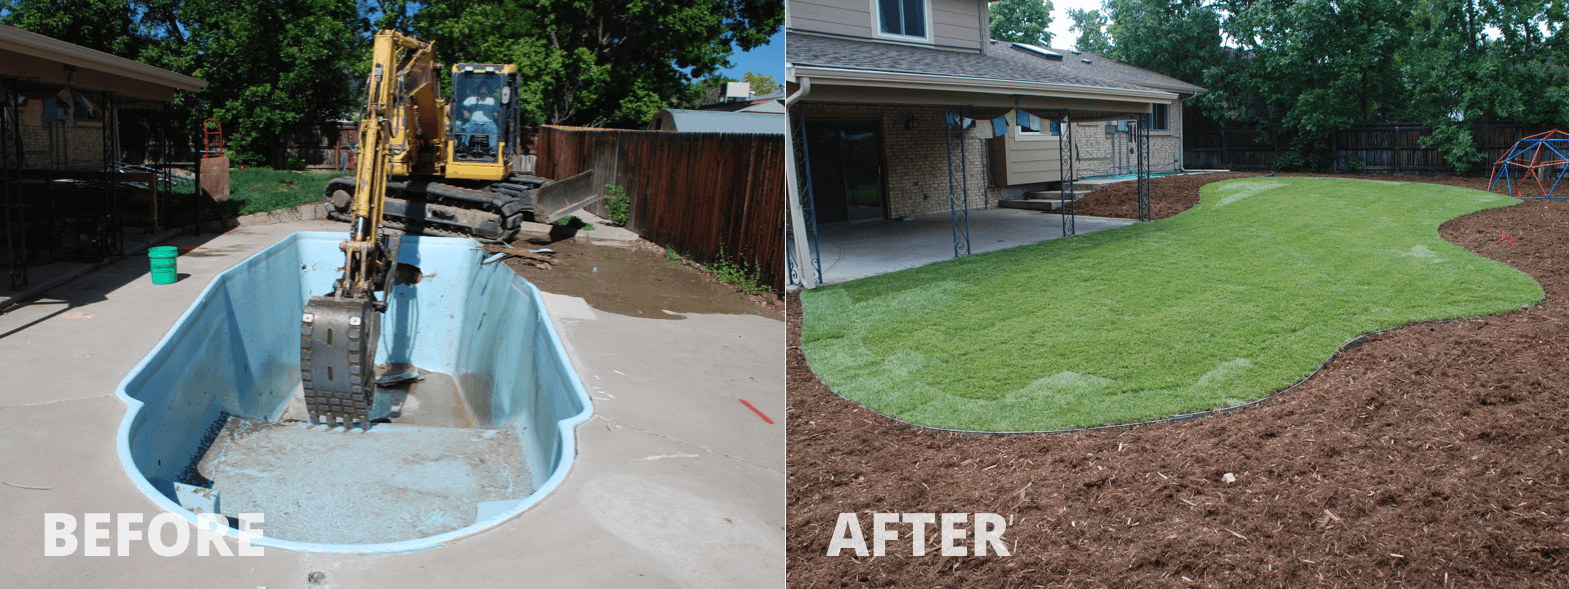 Mack Land LLC - Littleton, CO – Fiberglass Pool removal